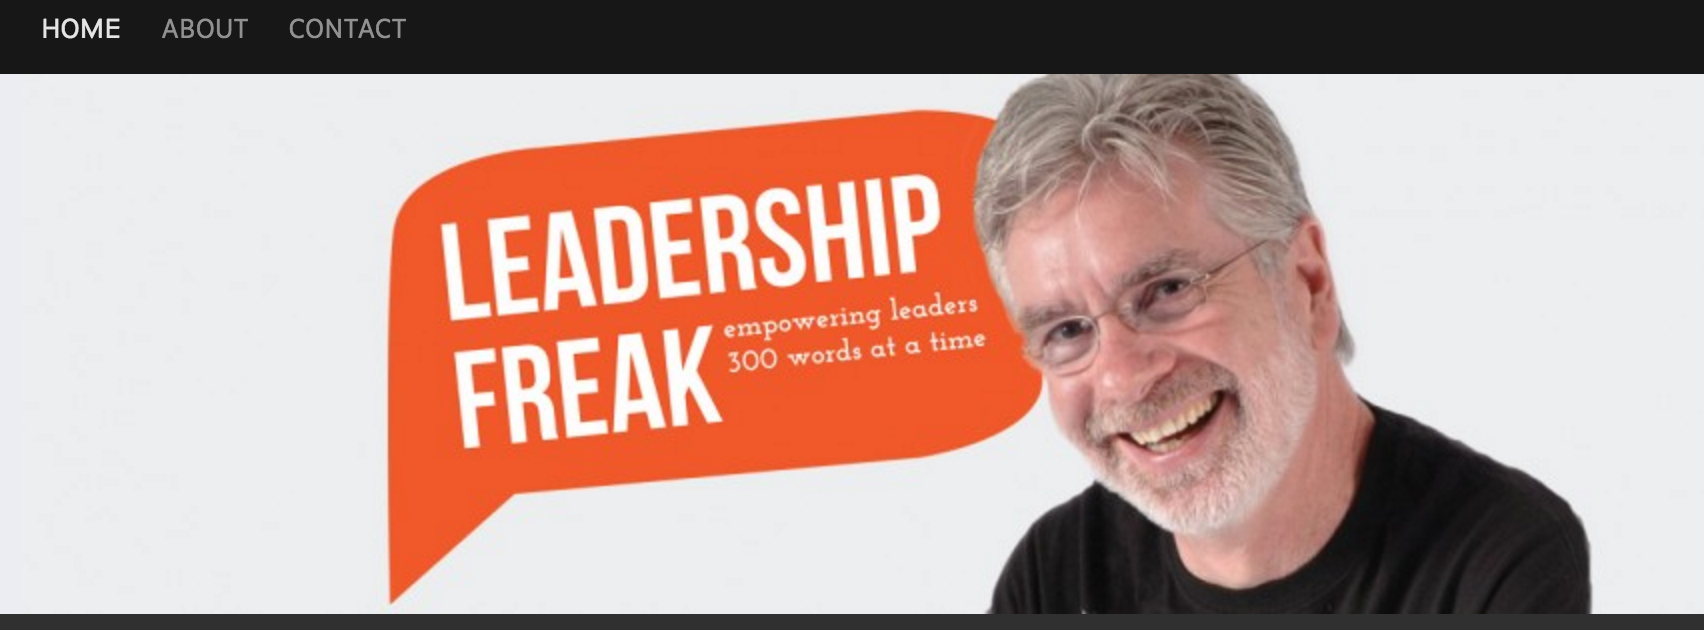 leadership_freak.png